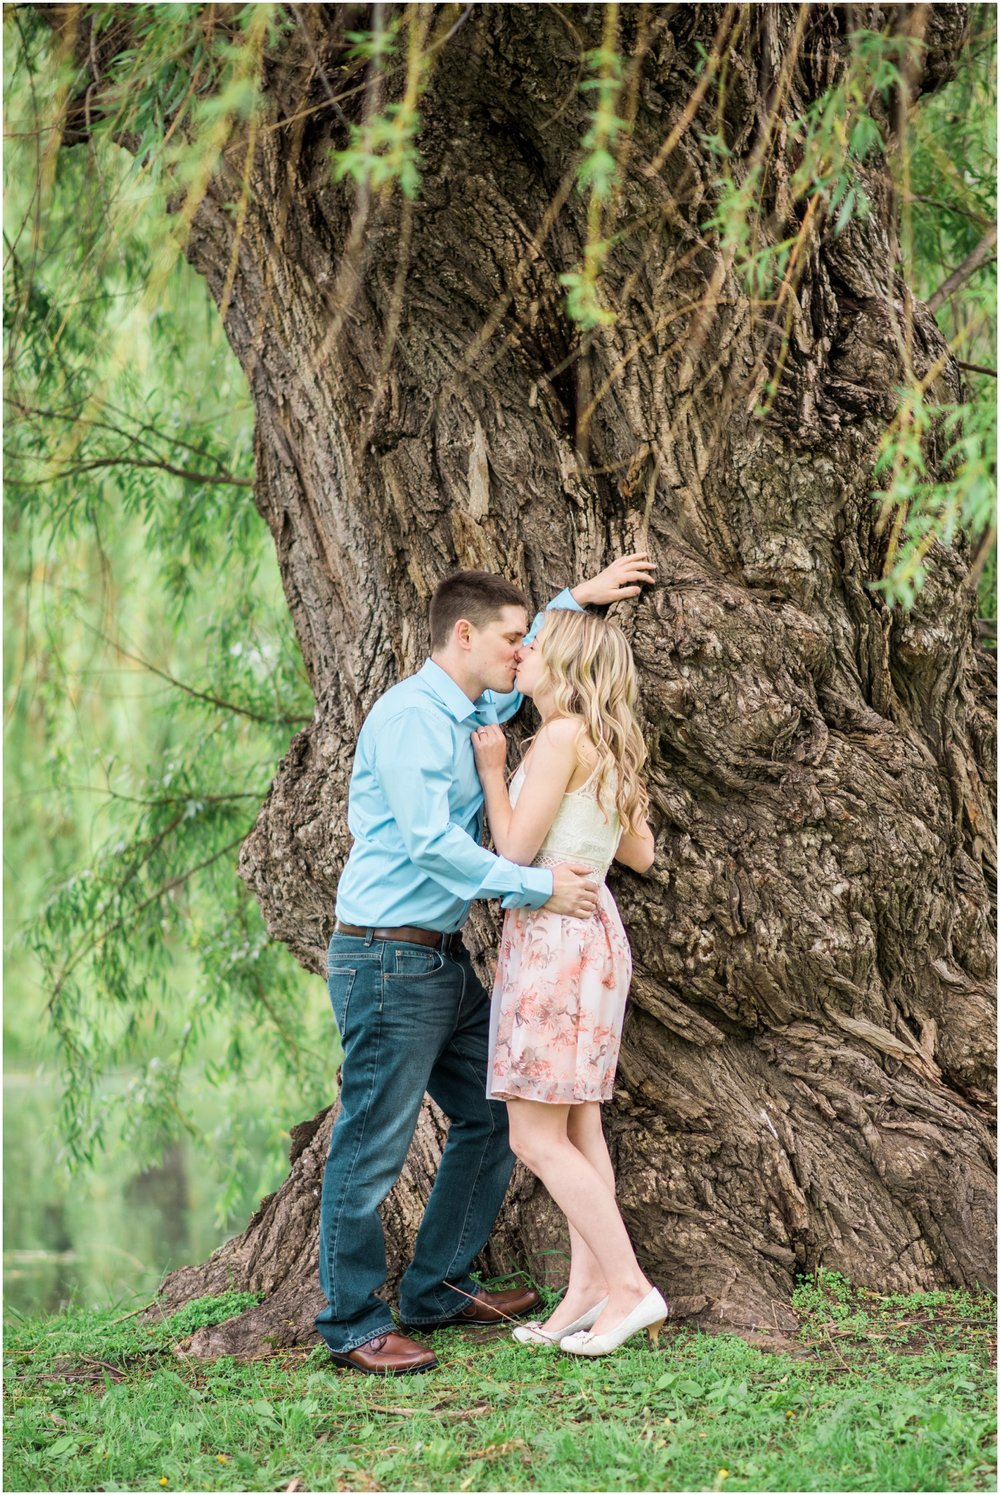 Paquette_Park_Portage_WI_Engagement_Photos_Heather_and_Derek_0021.jpg